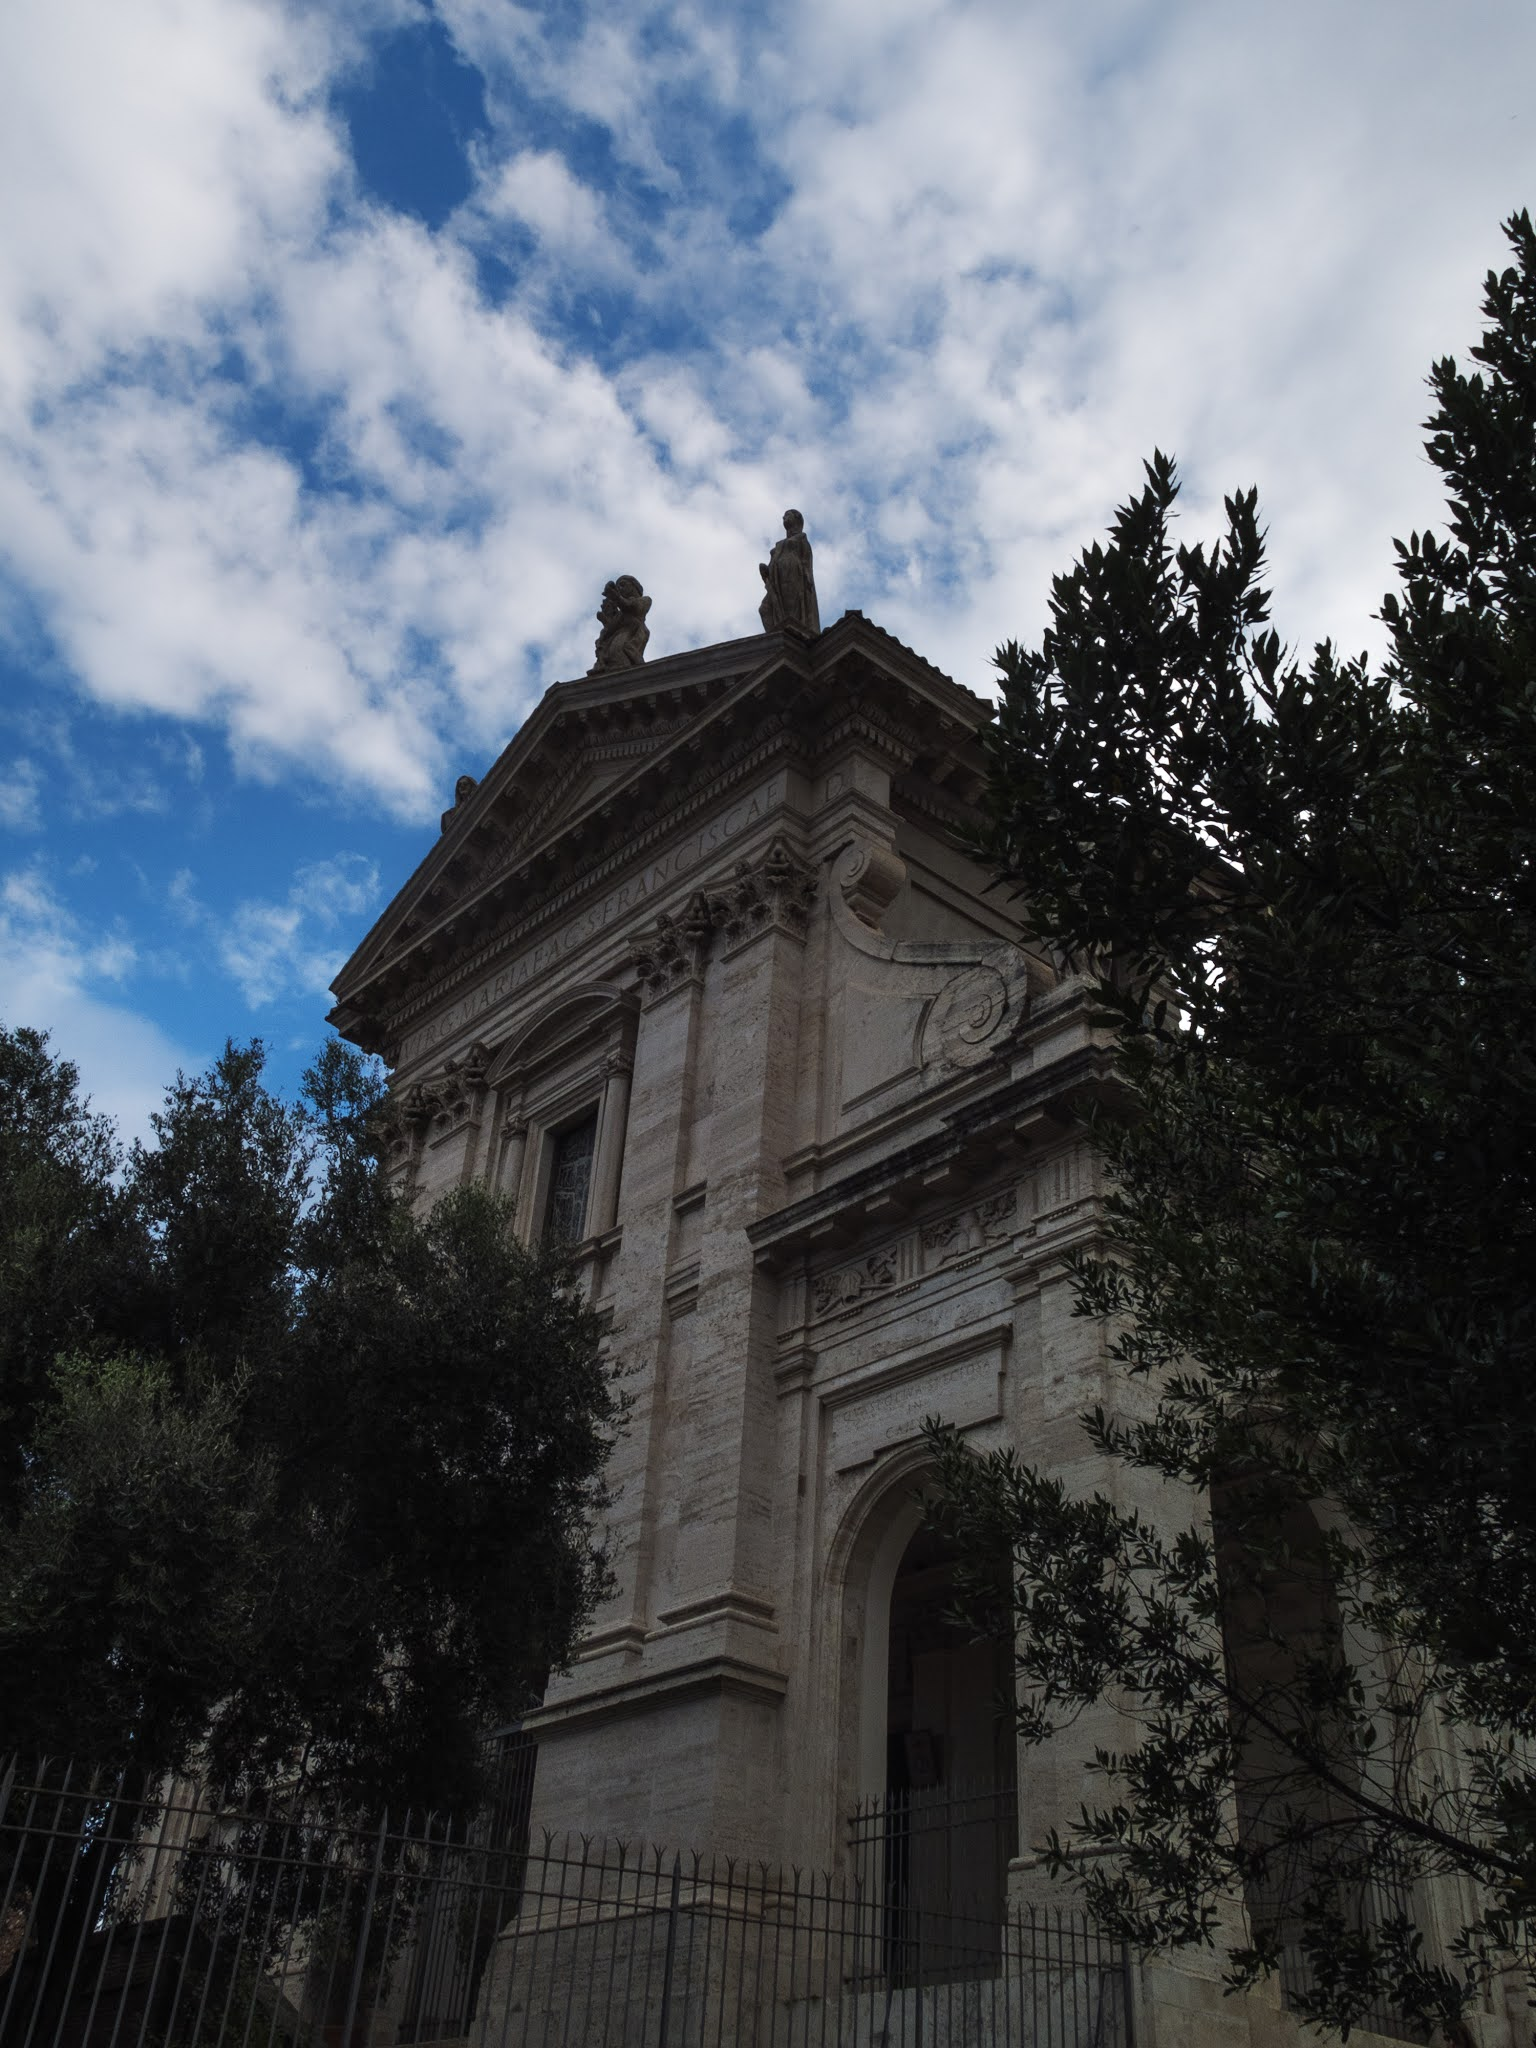 Basilica di Santa Francesca Romana surrounded by trees with a blue, cloudy sky above.